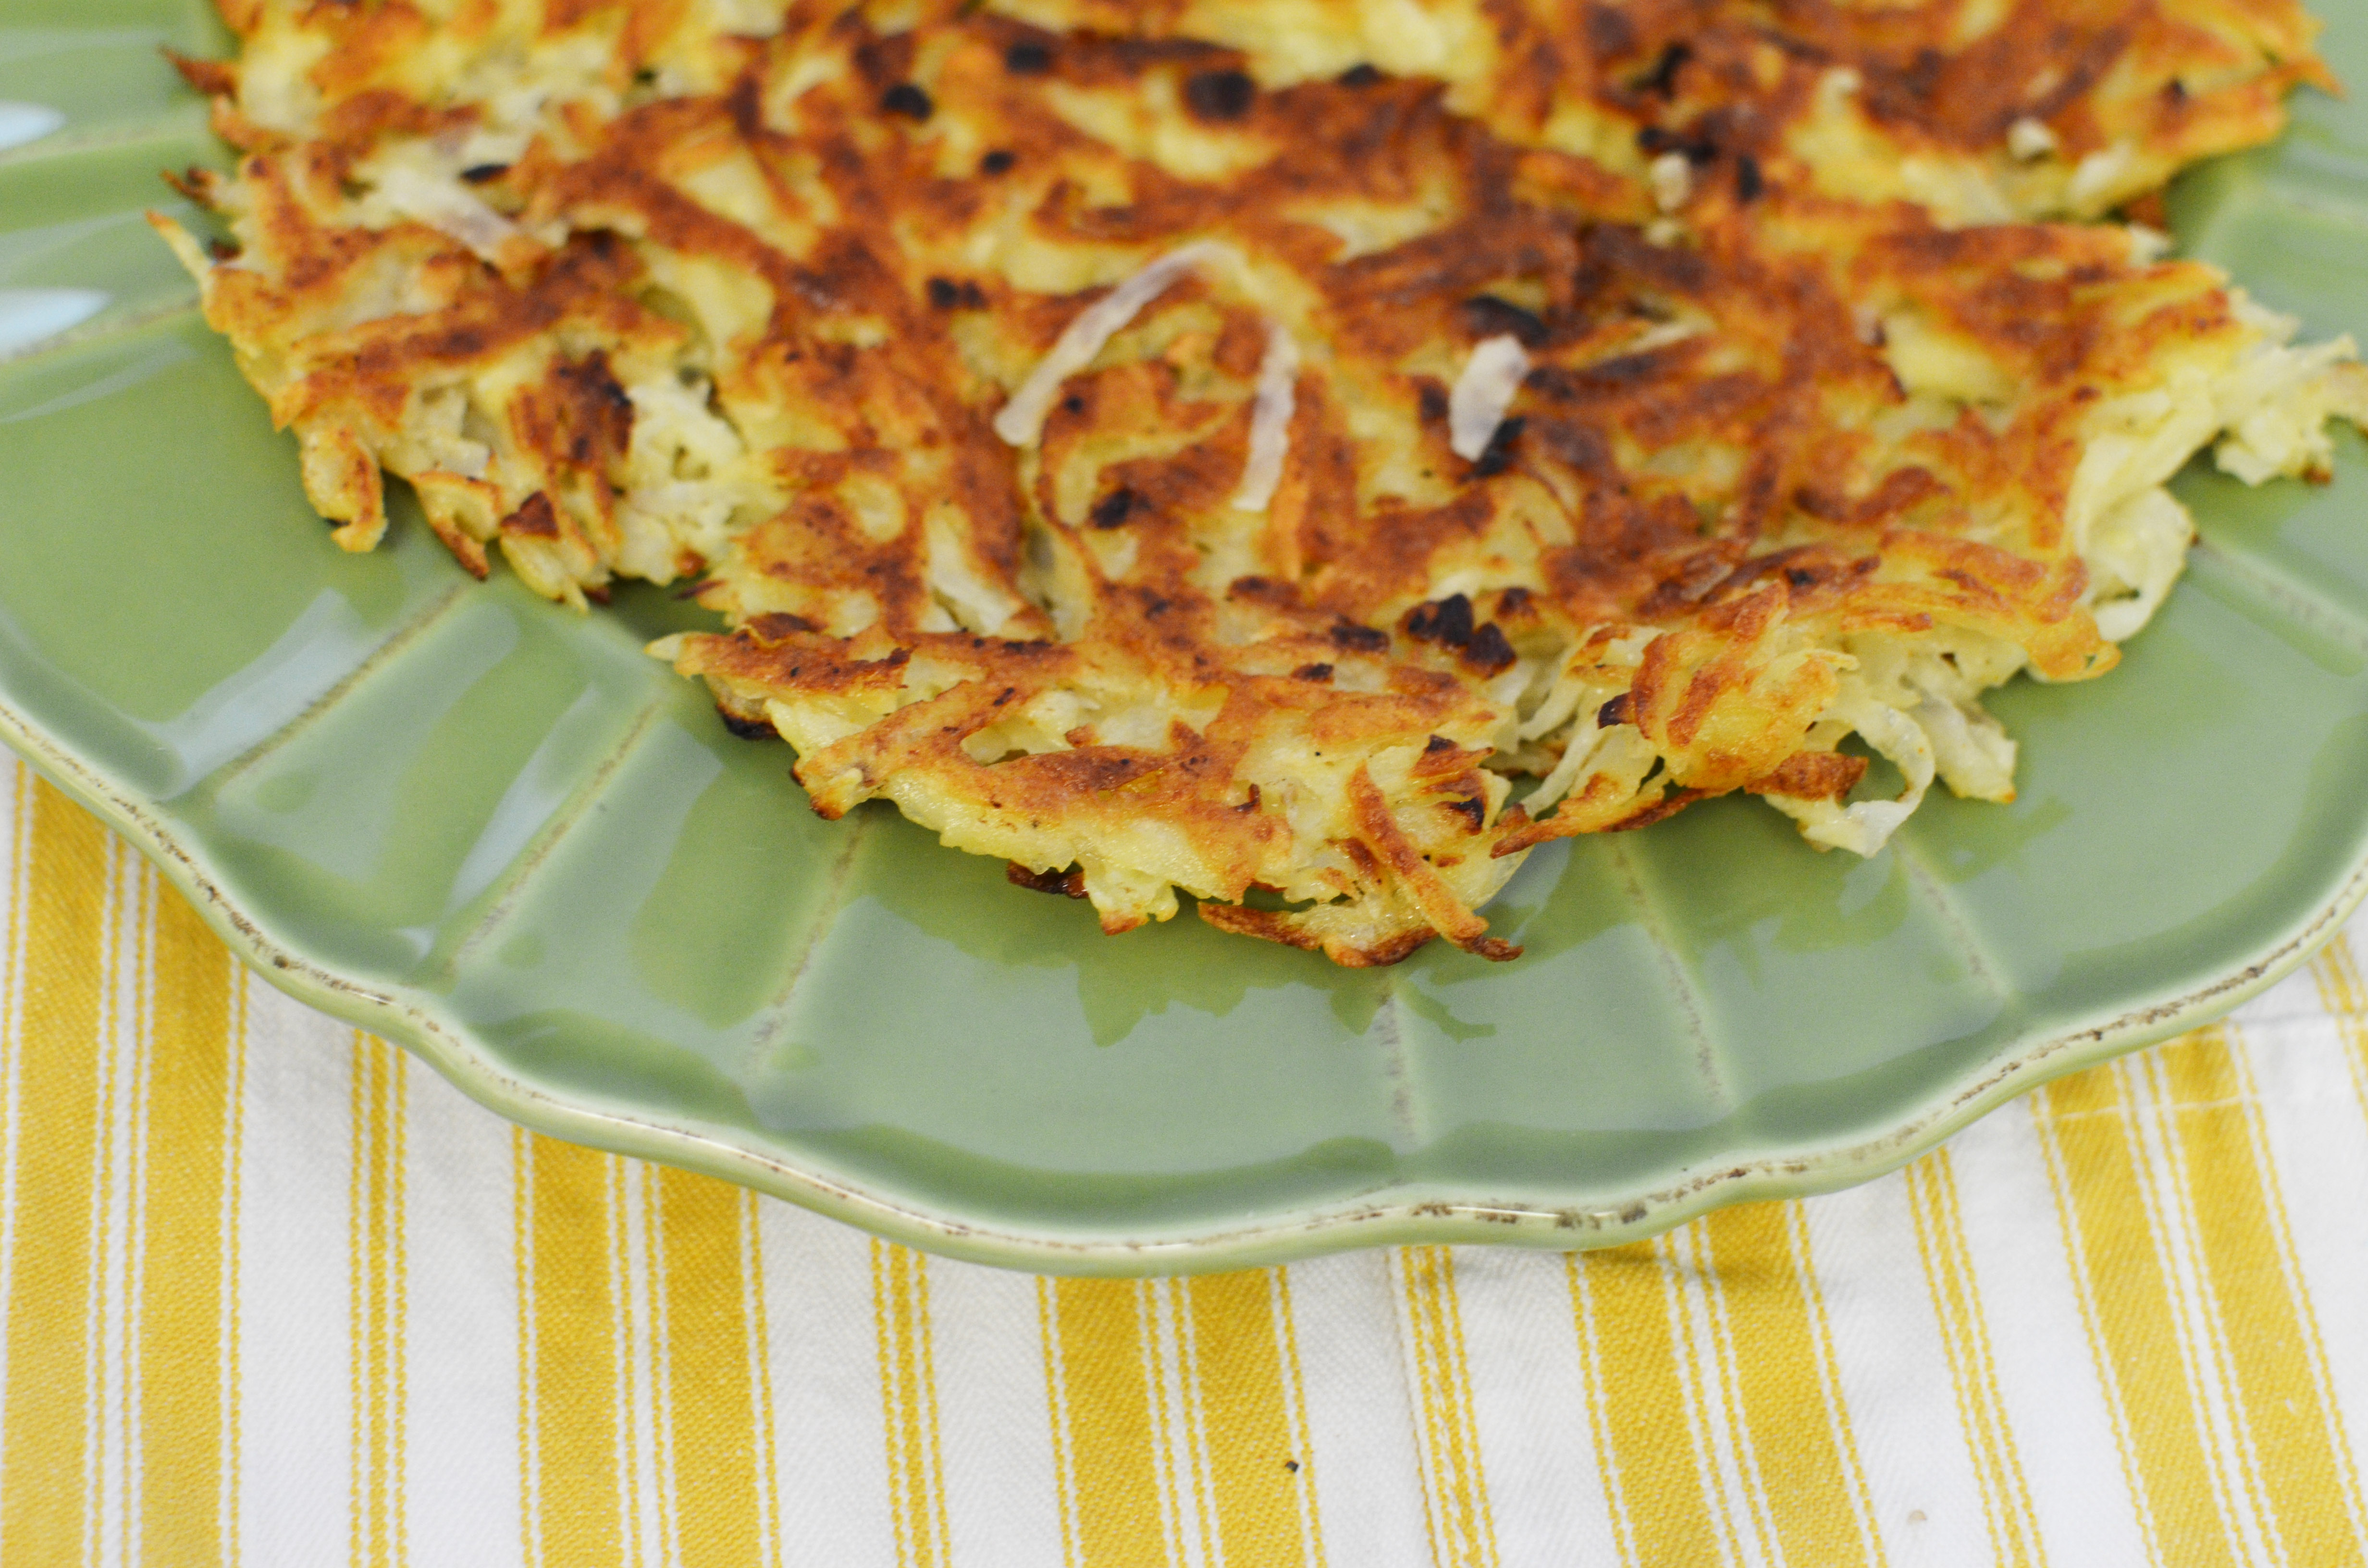 Crispy Hash Browns | Sprig and Flours